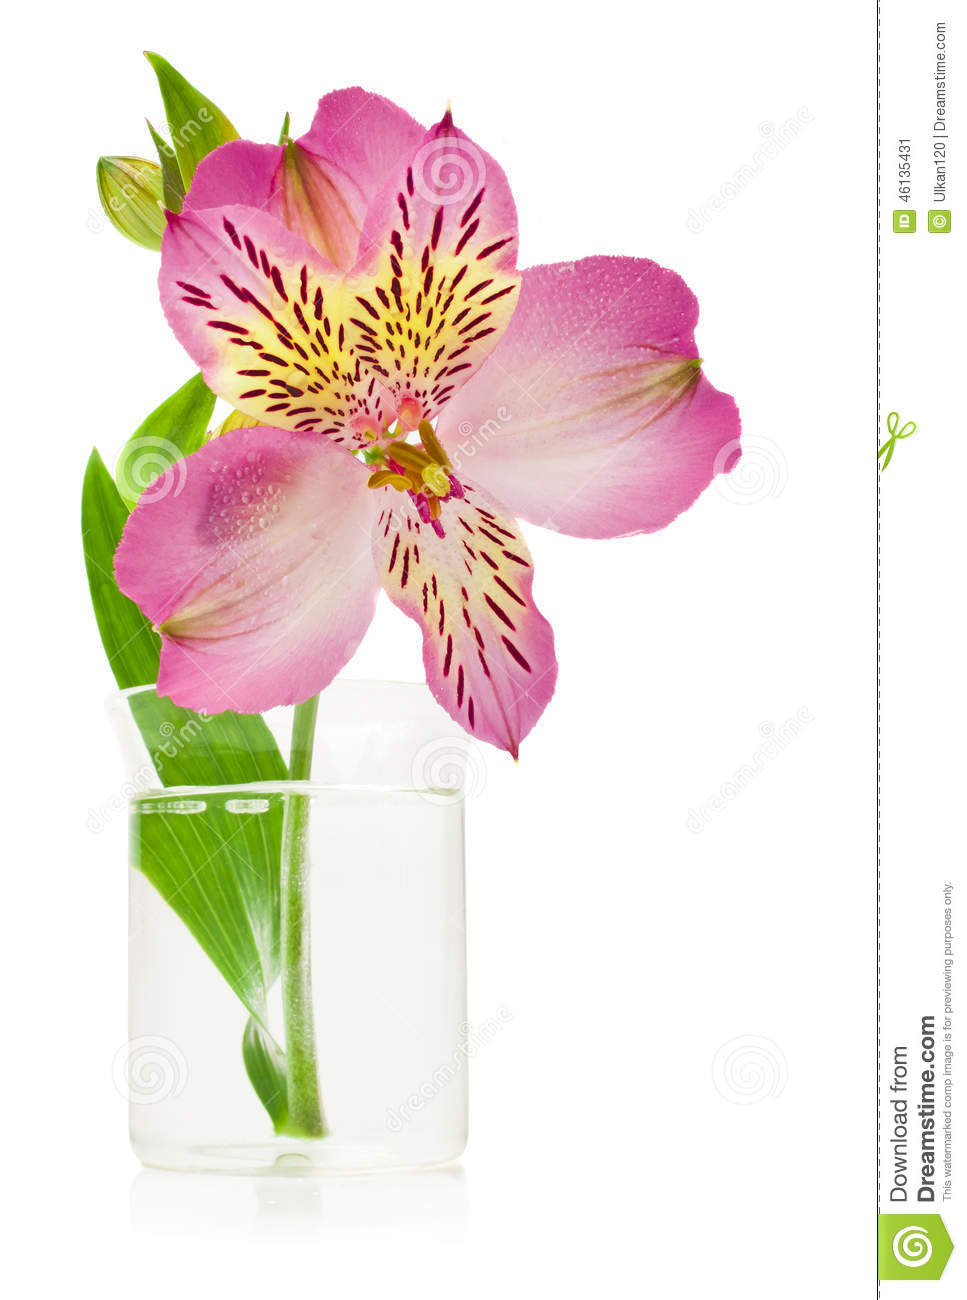 Pink lily flower transparent image the cliparts - Background Flower Lily Pink